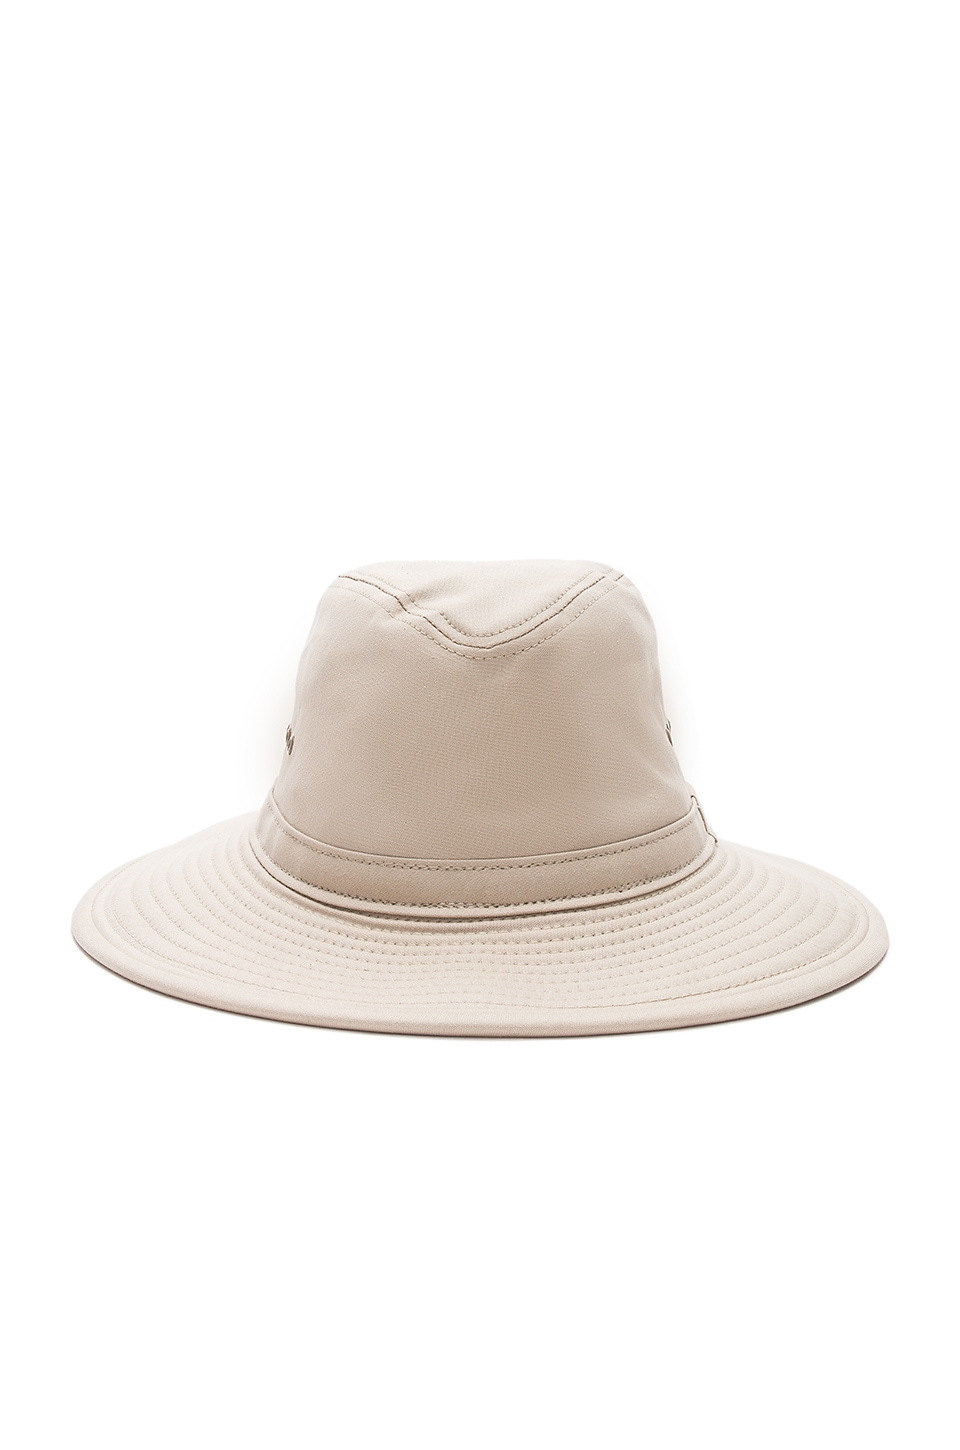 Summer Packer Hat by Filson